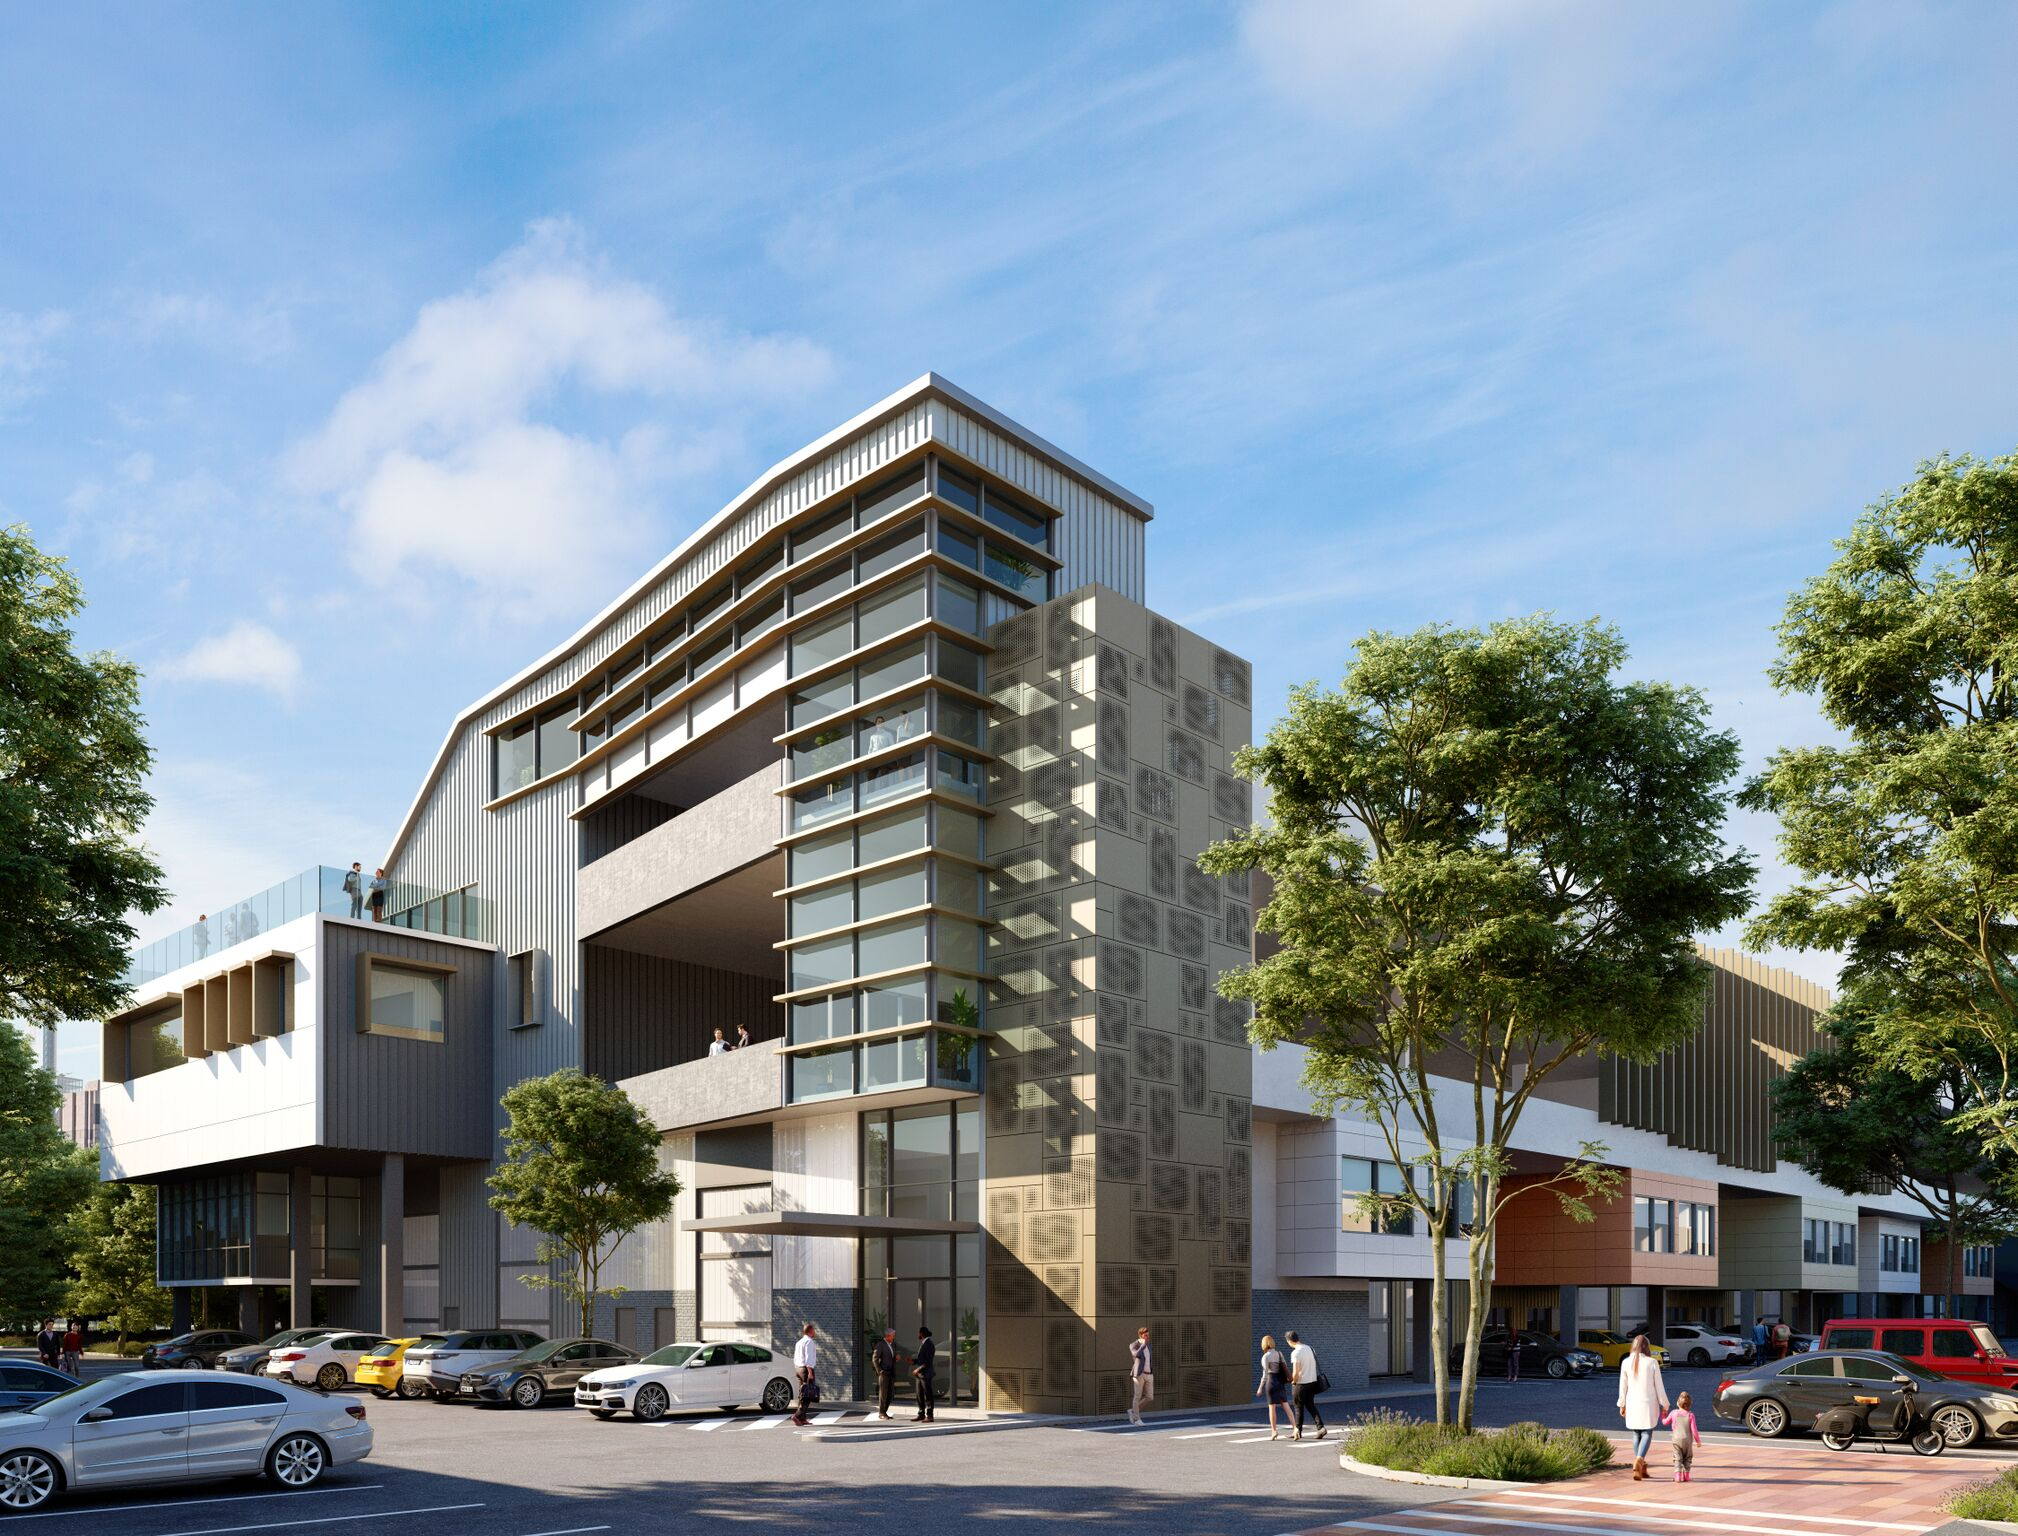 Dexus acquired the site in the Botany Lakes Business Park for $153.5 million in early 2015.